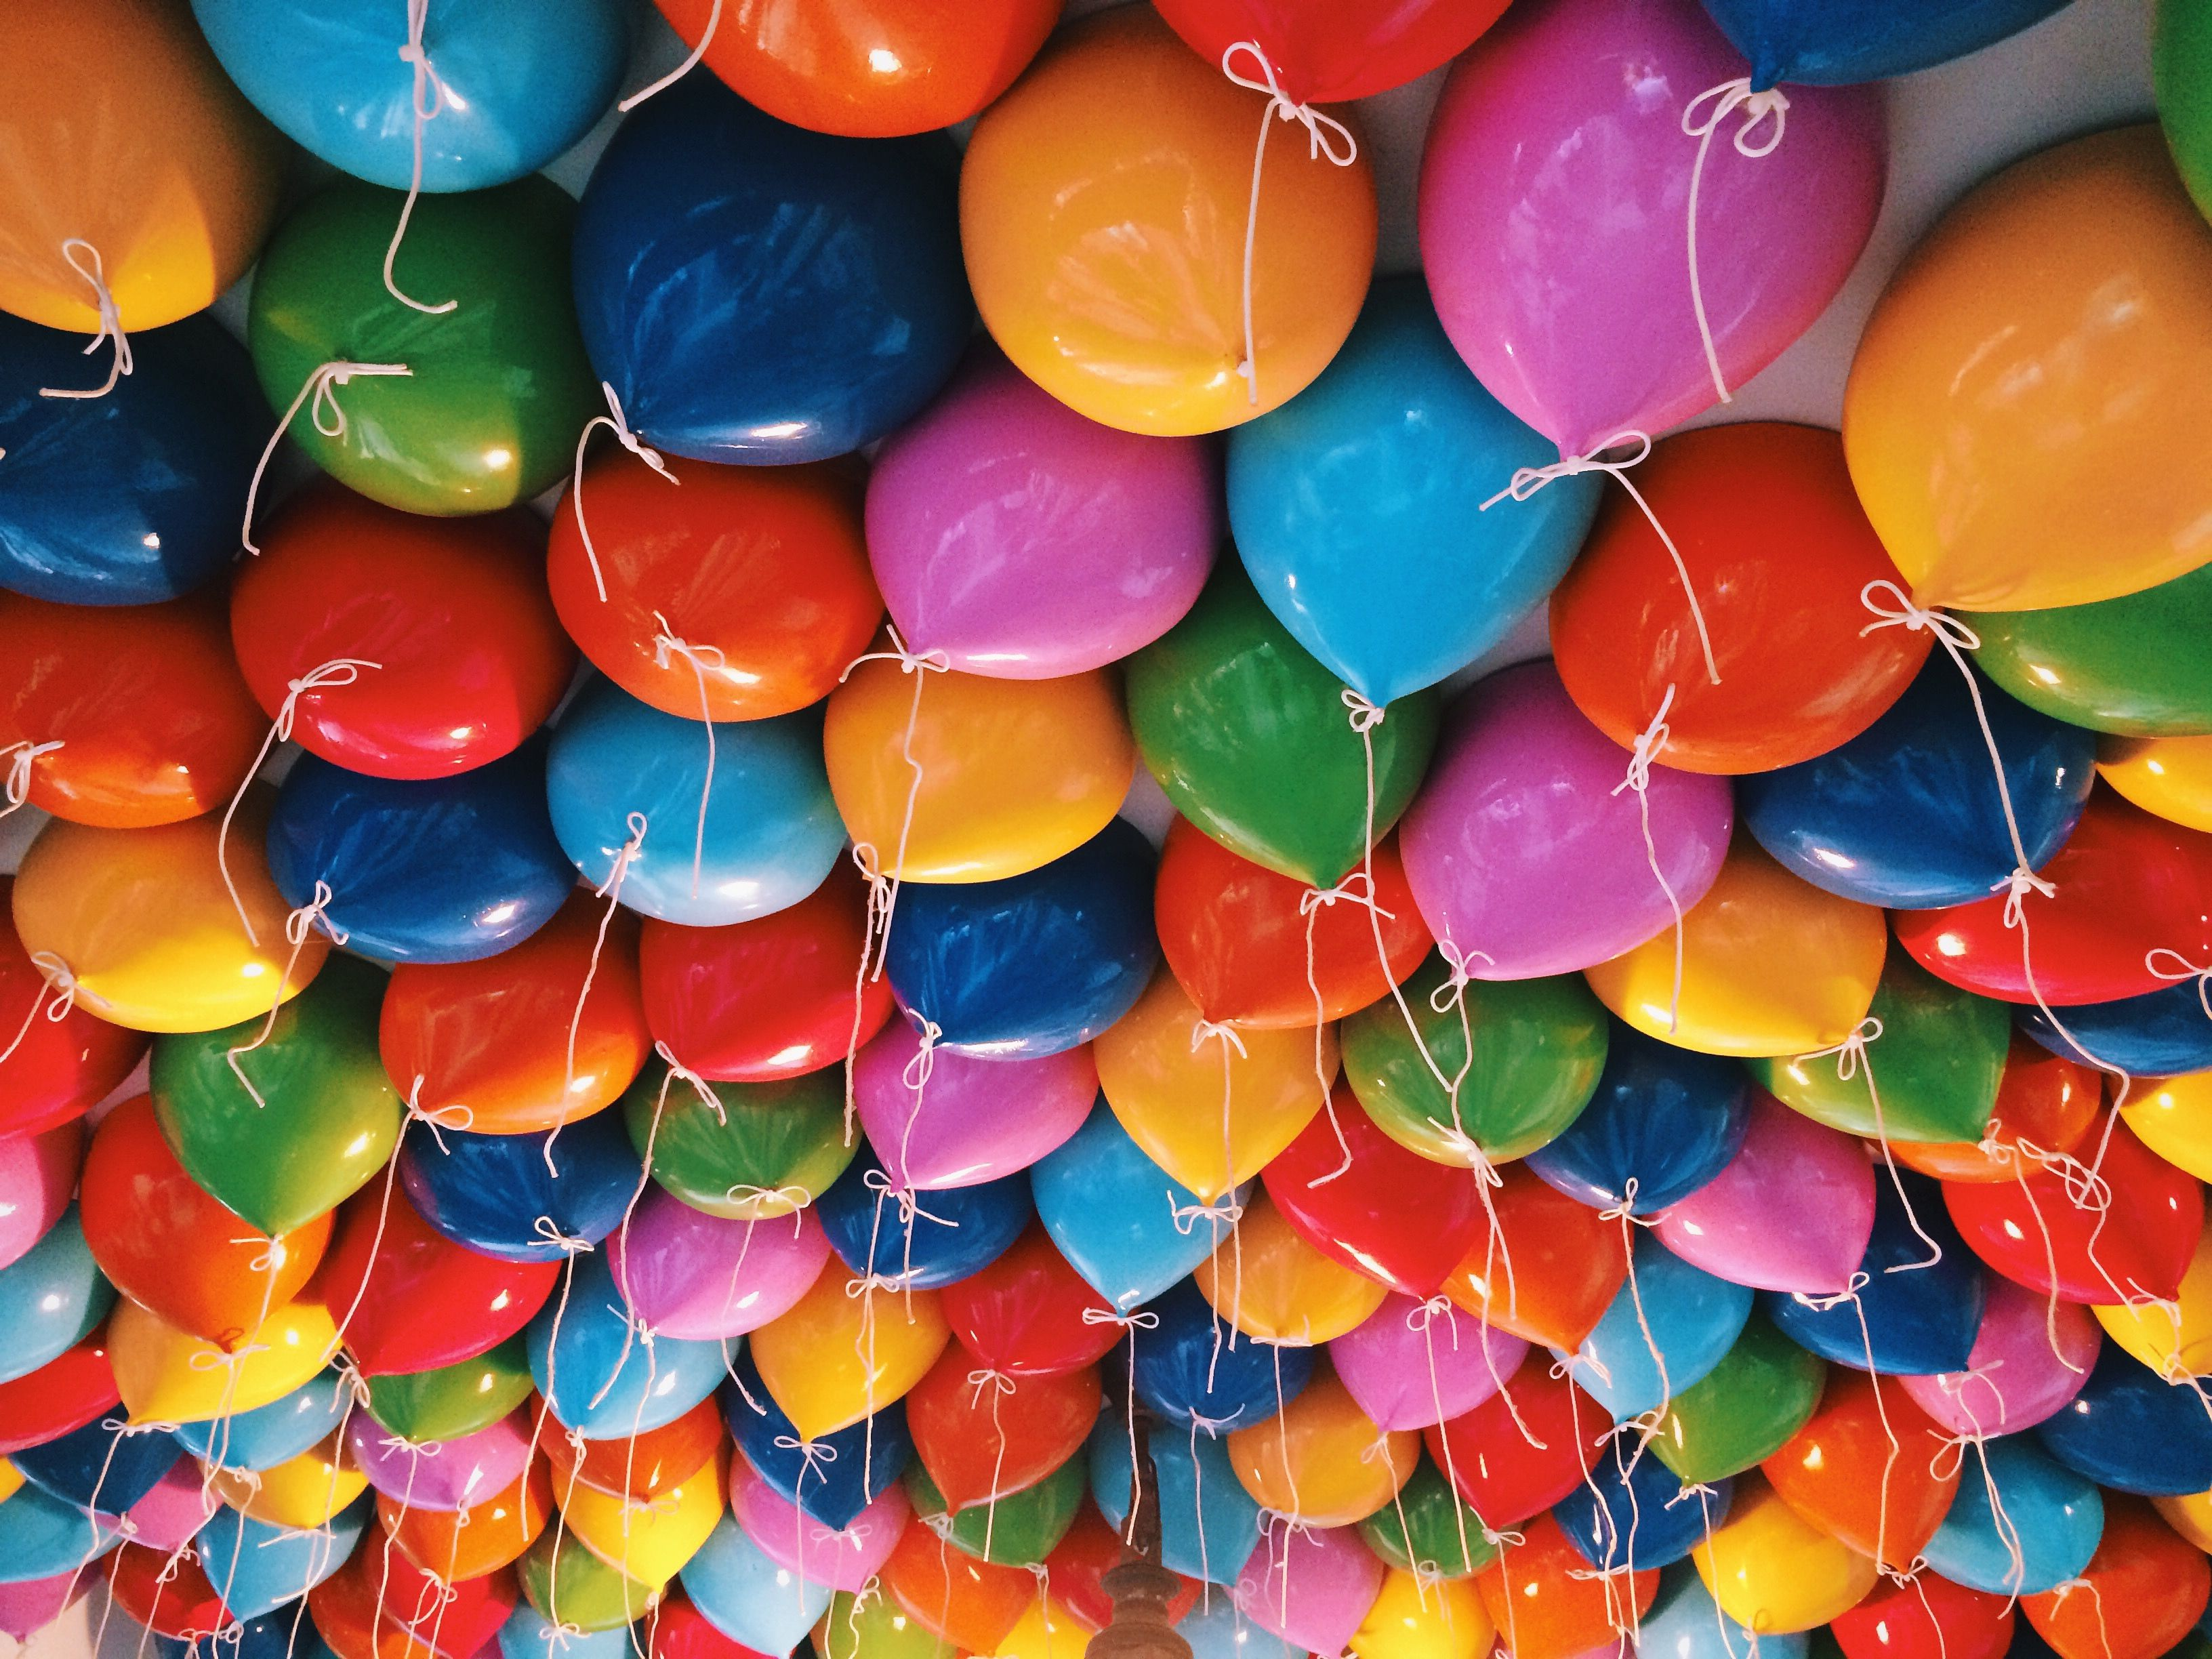 Colorful Helium Balloons Against Ceiling